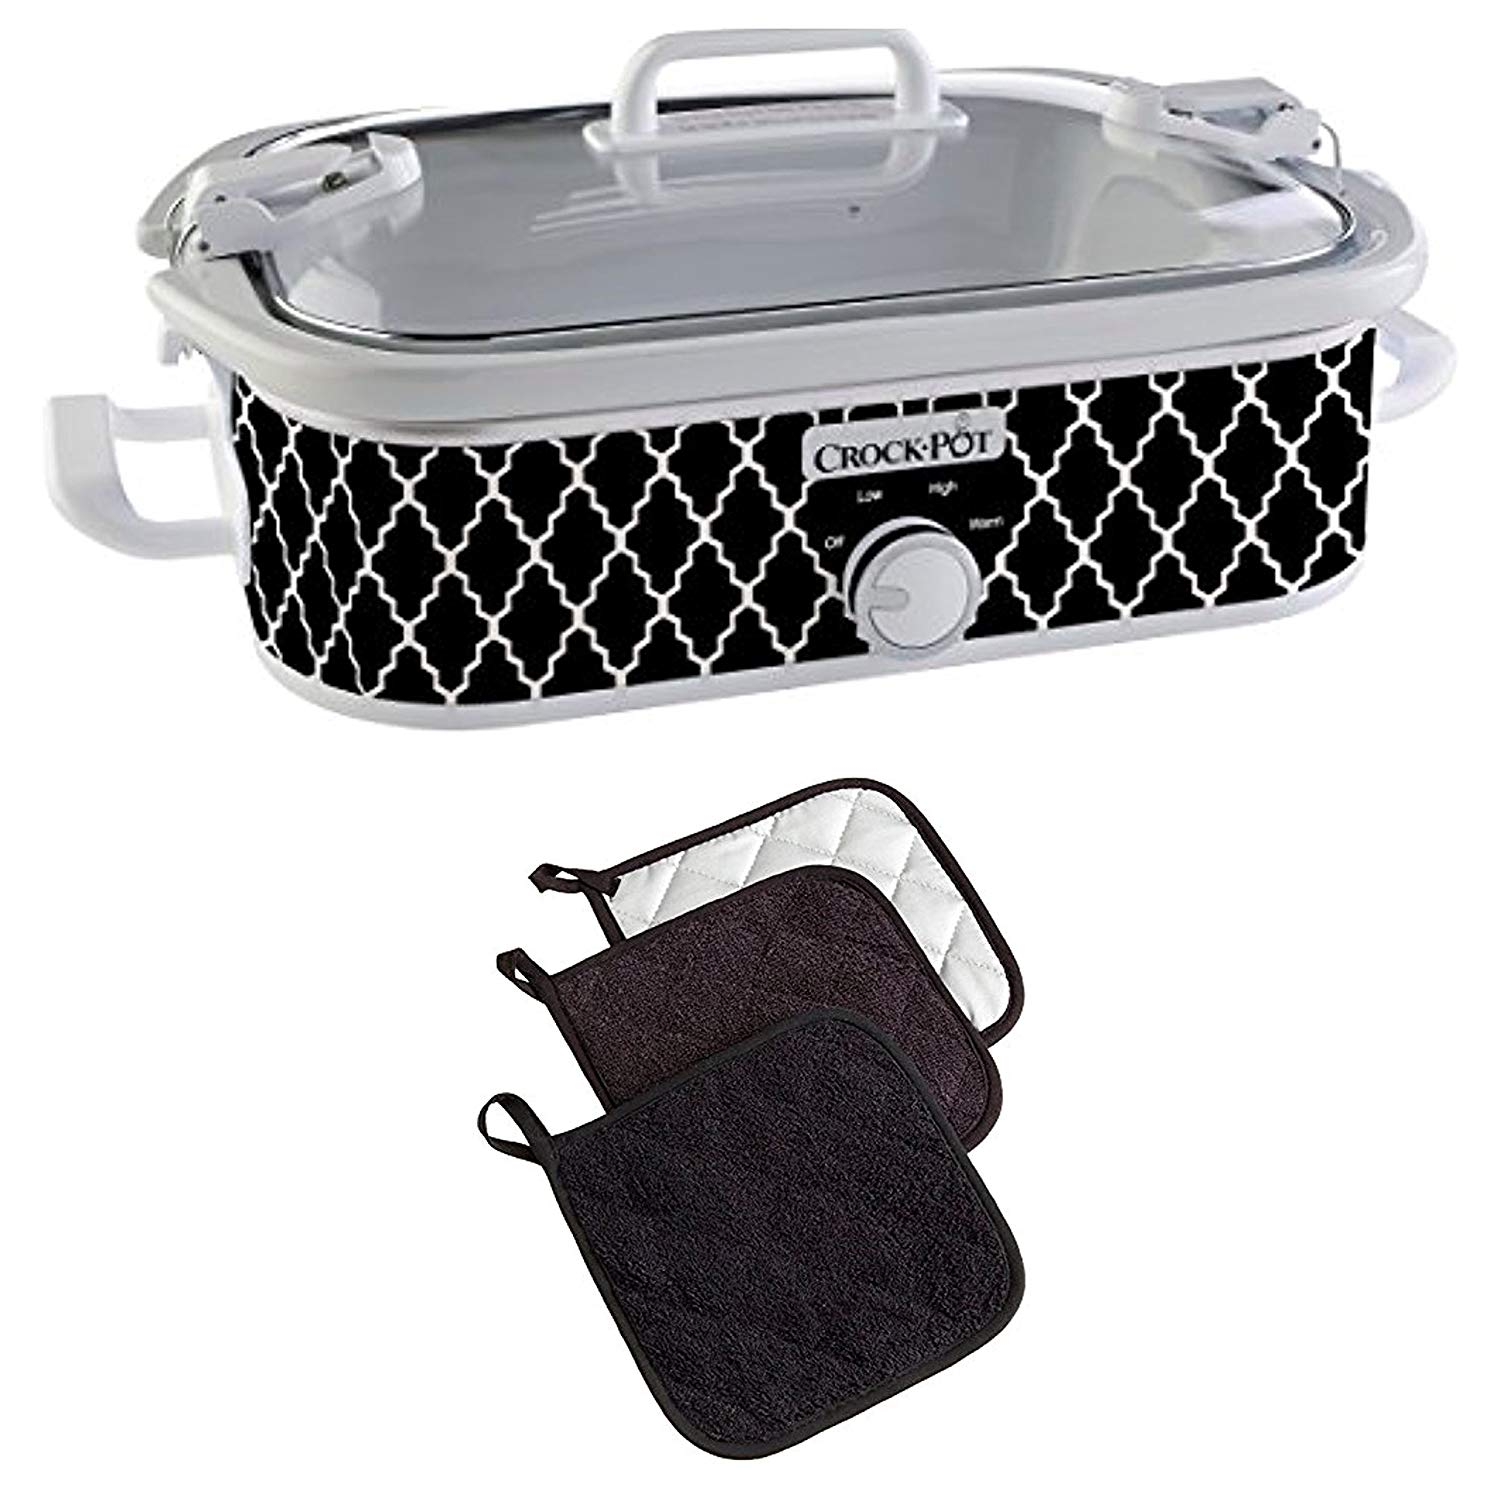 "Bundle Includes 2 Items - Crock-Pot 3.5-Quart Casserole Crock Manual Slow Cooker, Black and White and DII Cotton Terry Pot Holders, 7x7"" Set of 3, Heat Resistant and Machine Washable Hot Pads"